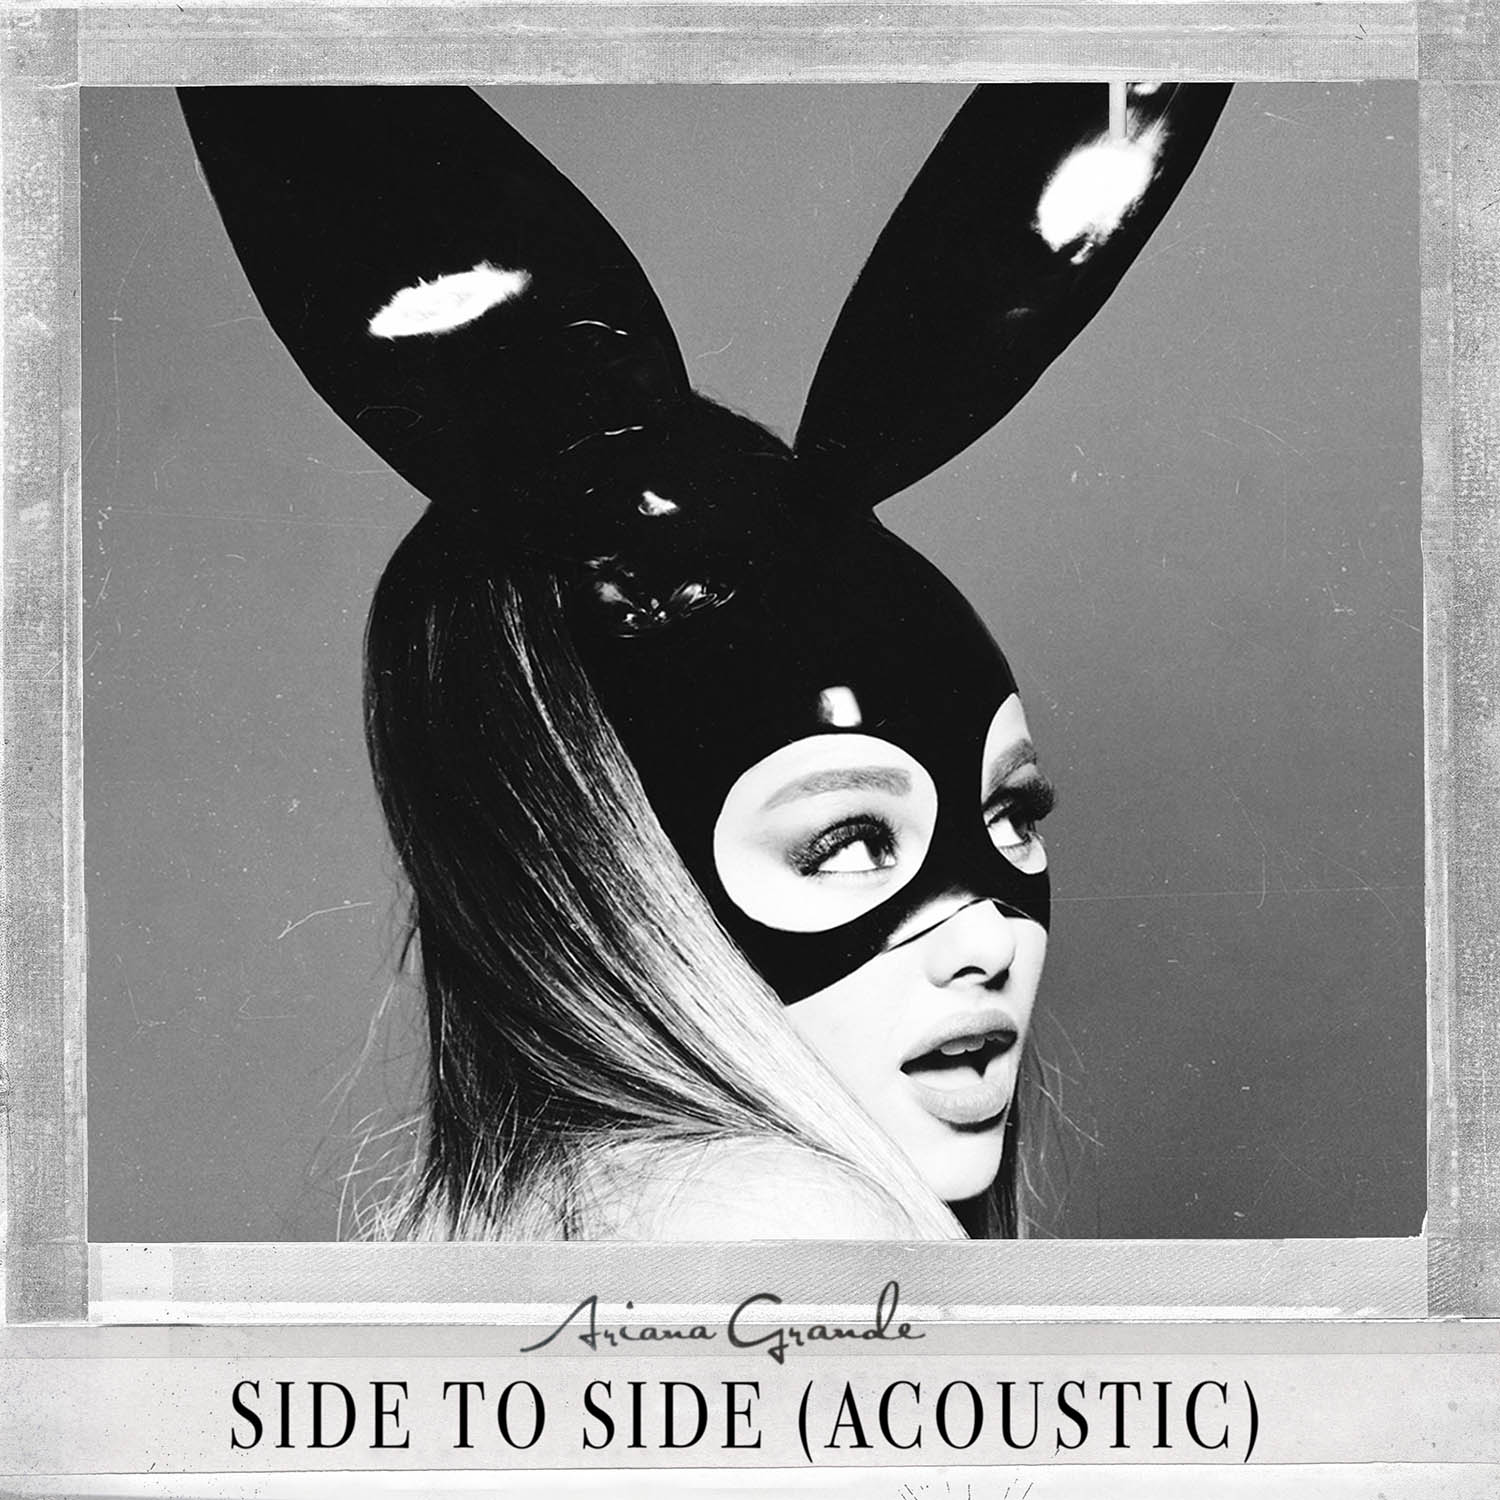 FLAC - Ariana Grande - Side to Side (Acoustic) - Flac   Page